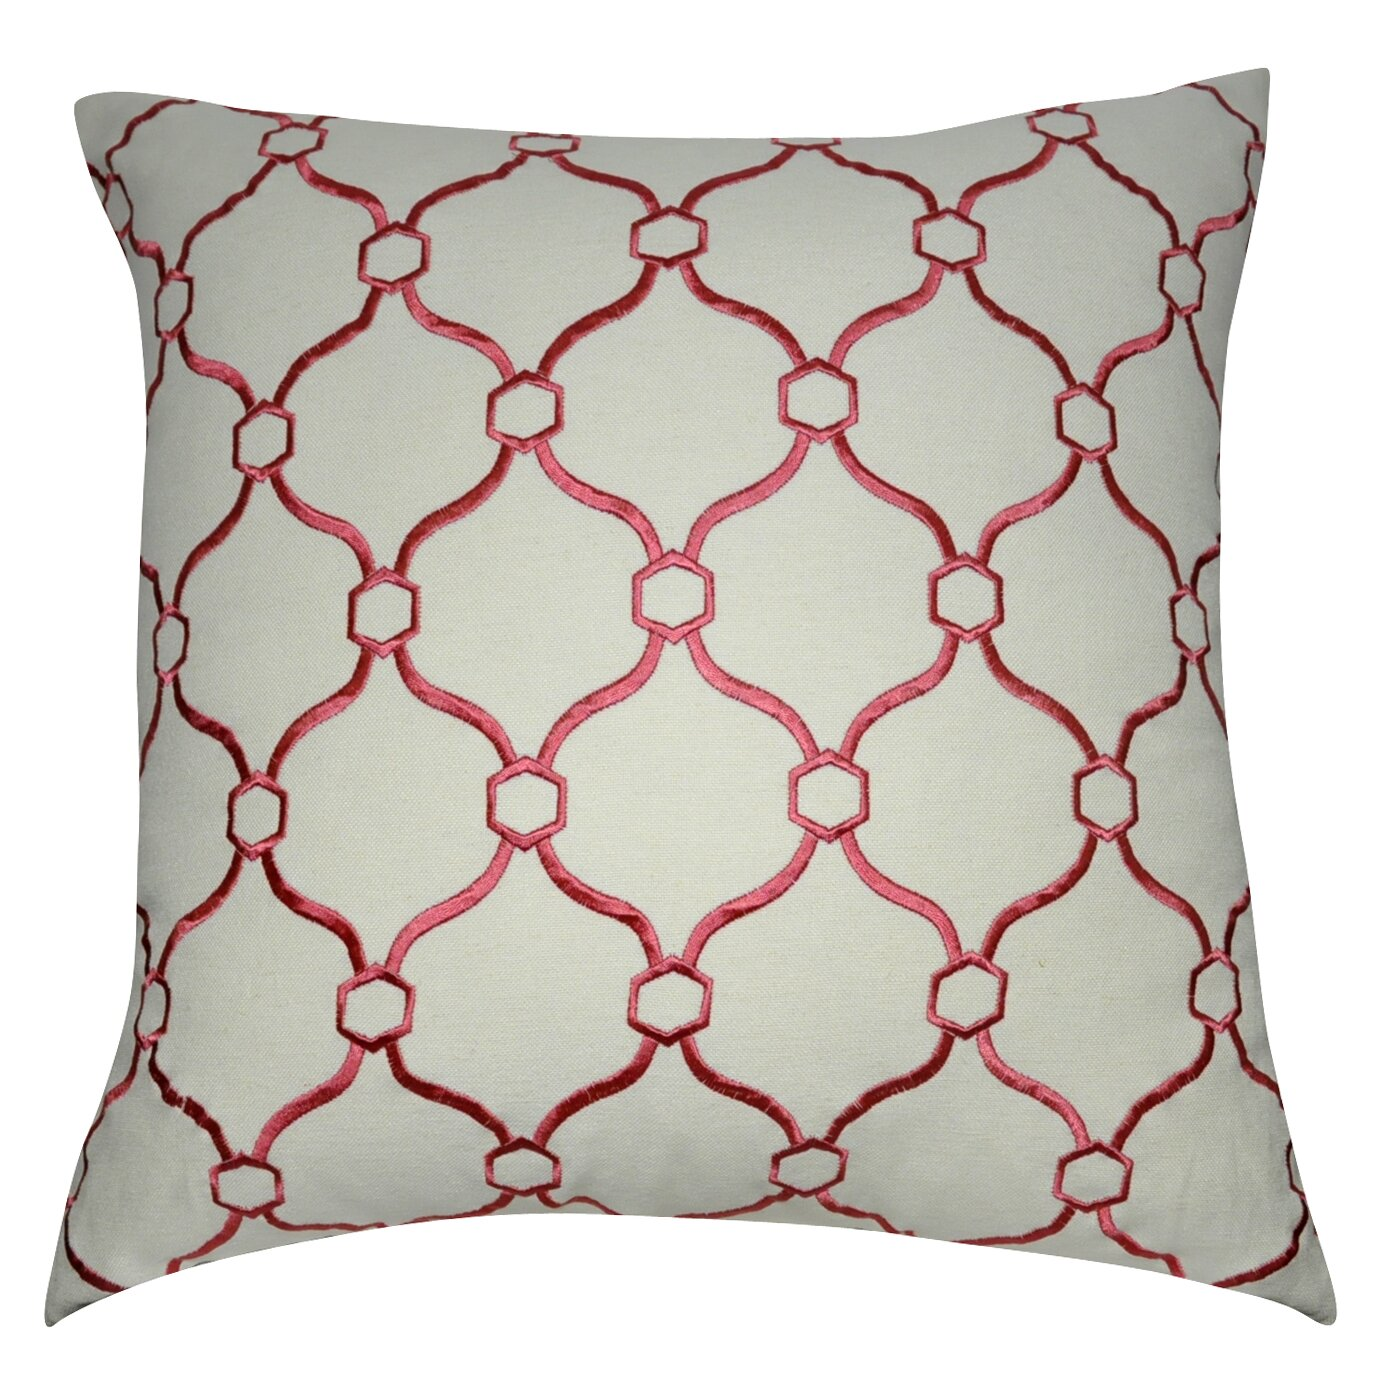 Decorative Pillow Wayfair : Loom and Mill Decorative Throw Pillow & Reviews Wayfair